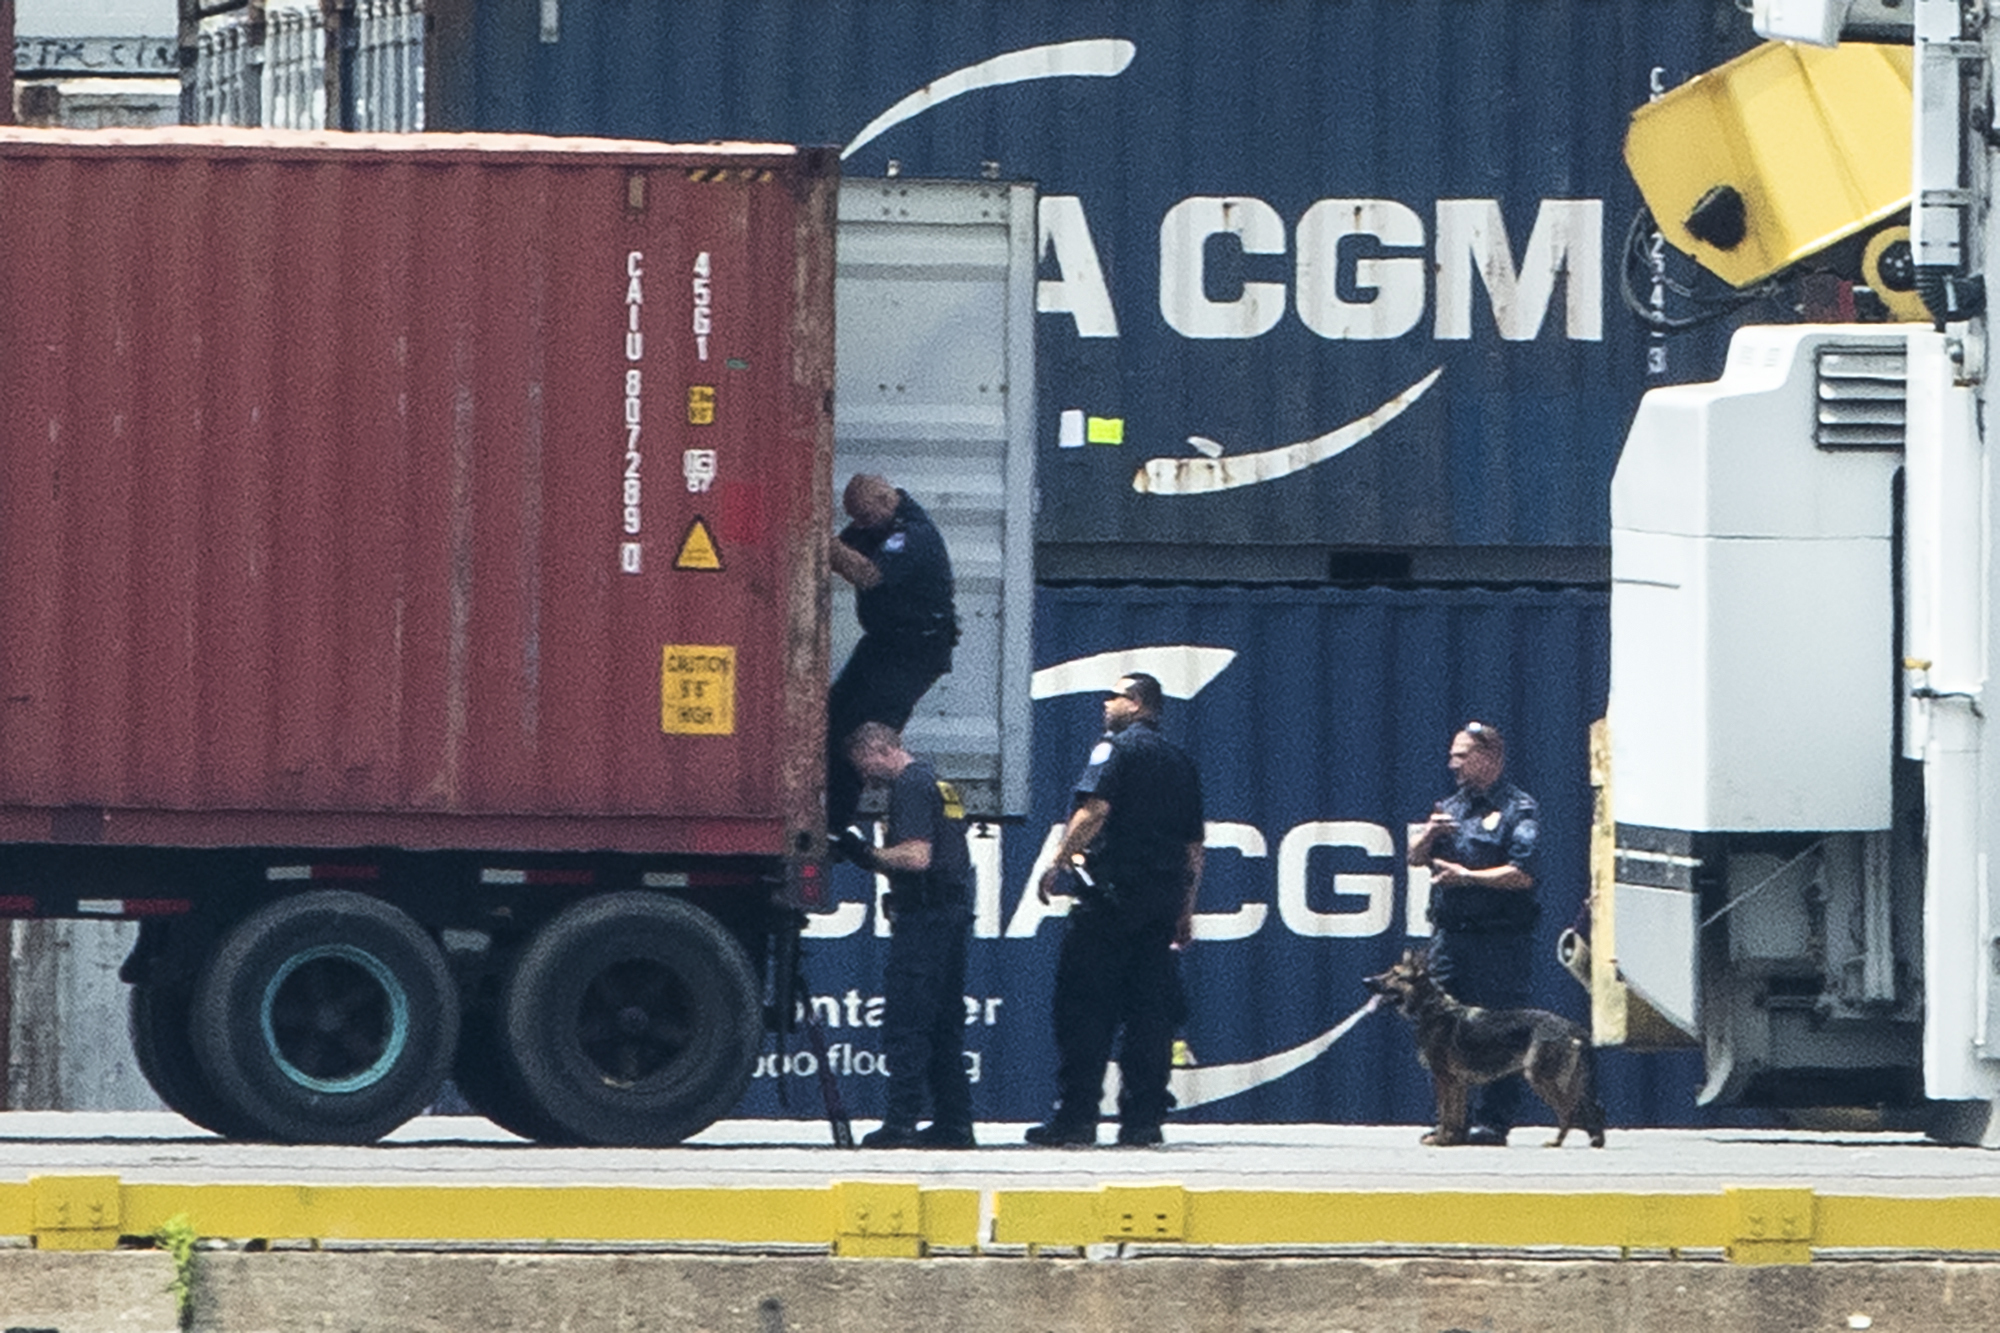 Over $1 billion worth of cocaine seized by feds at Philadelphia port